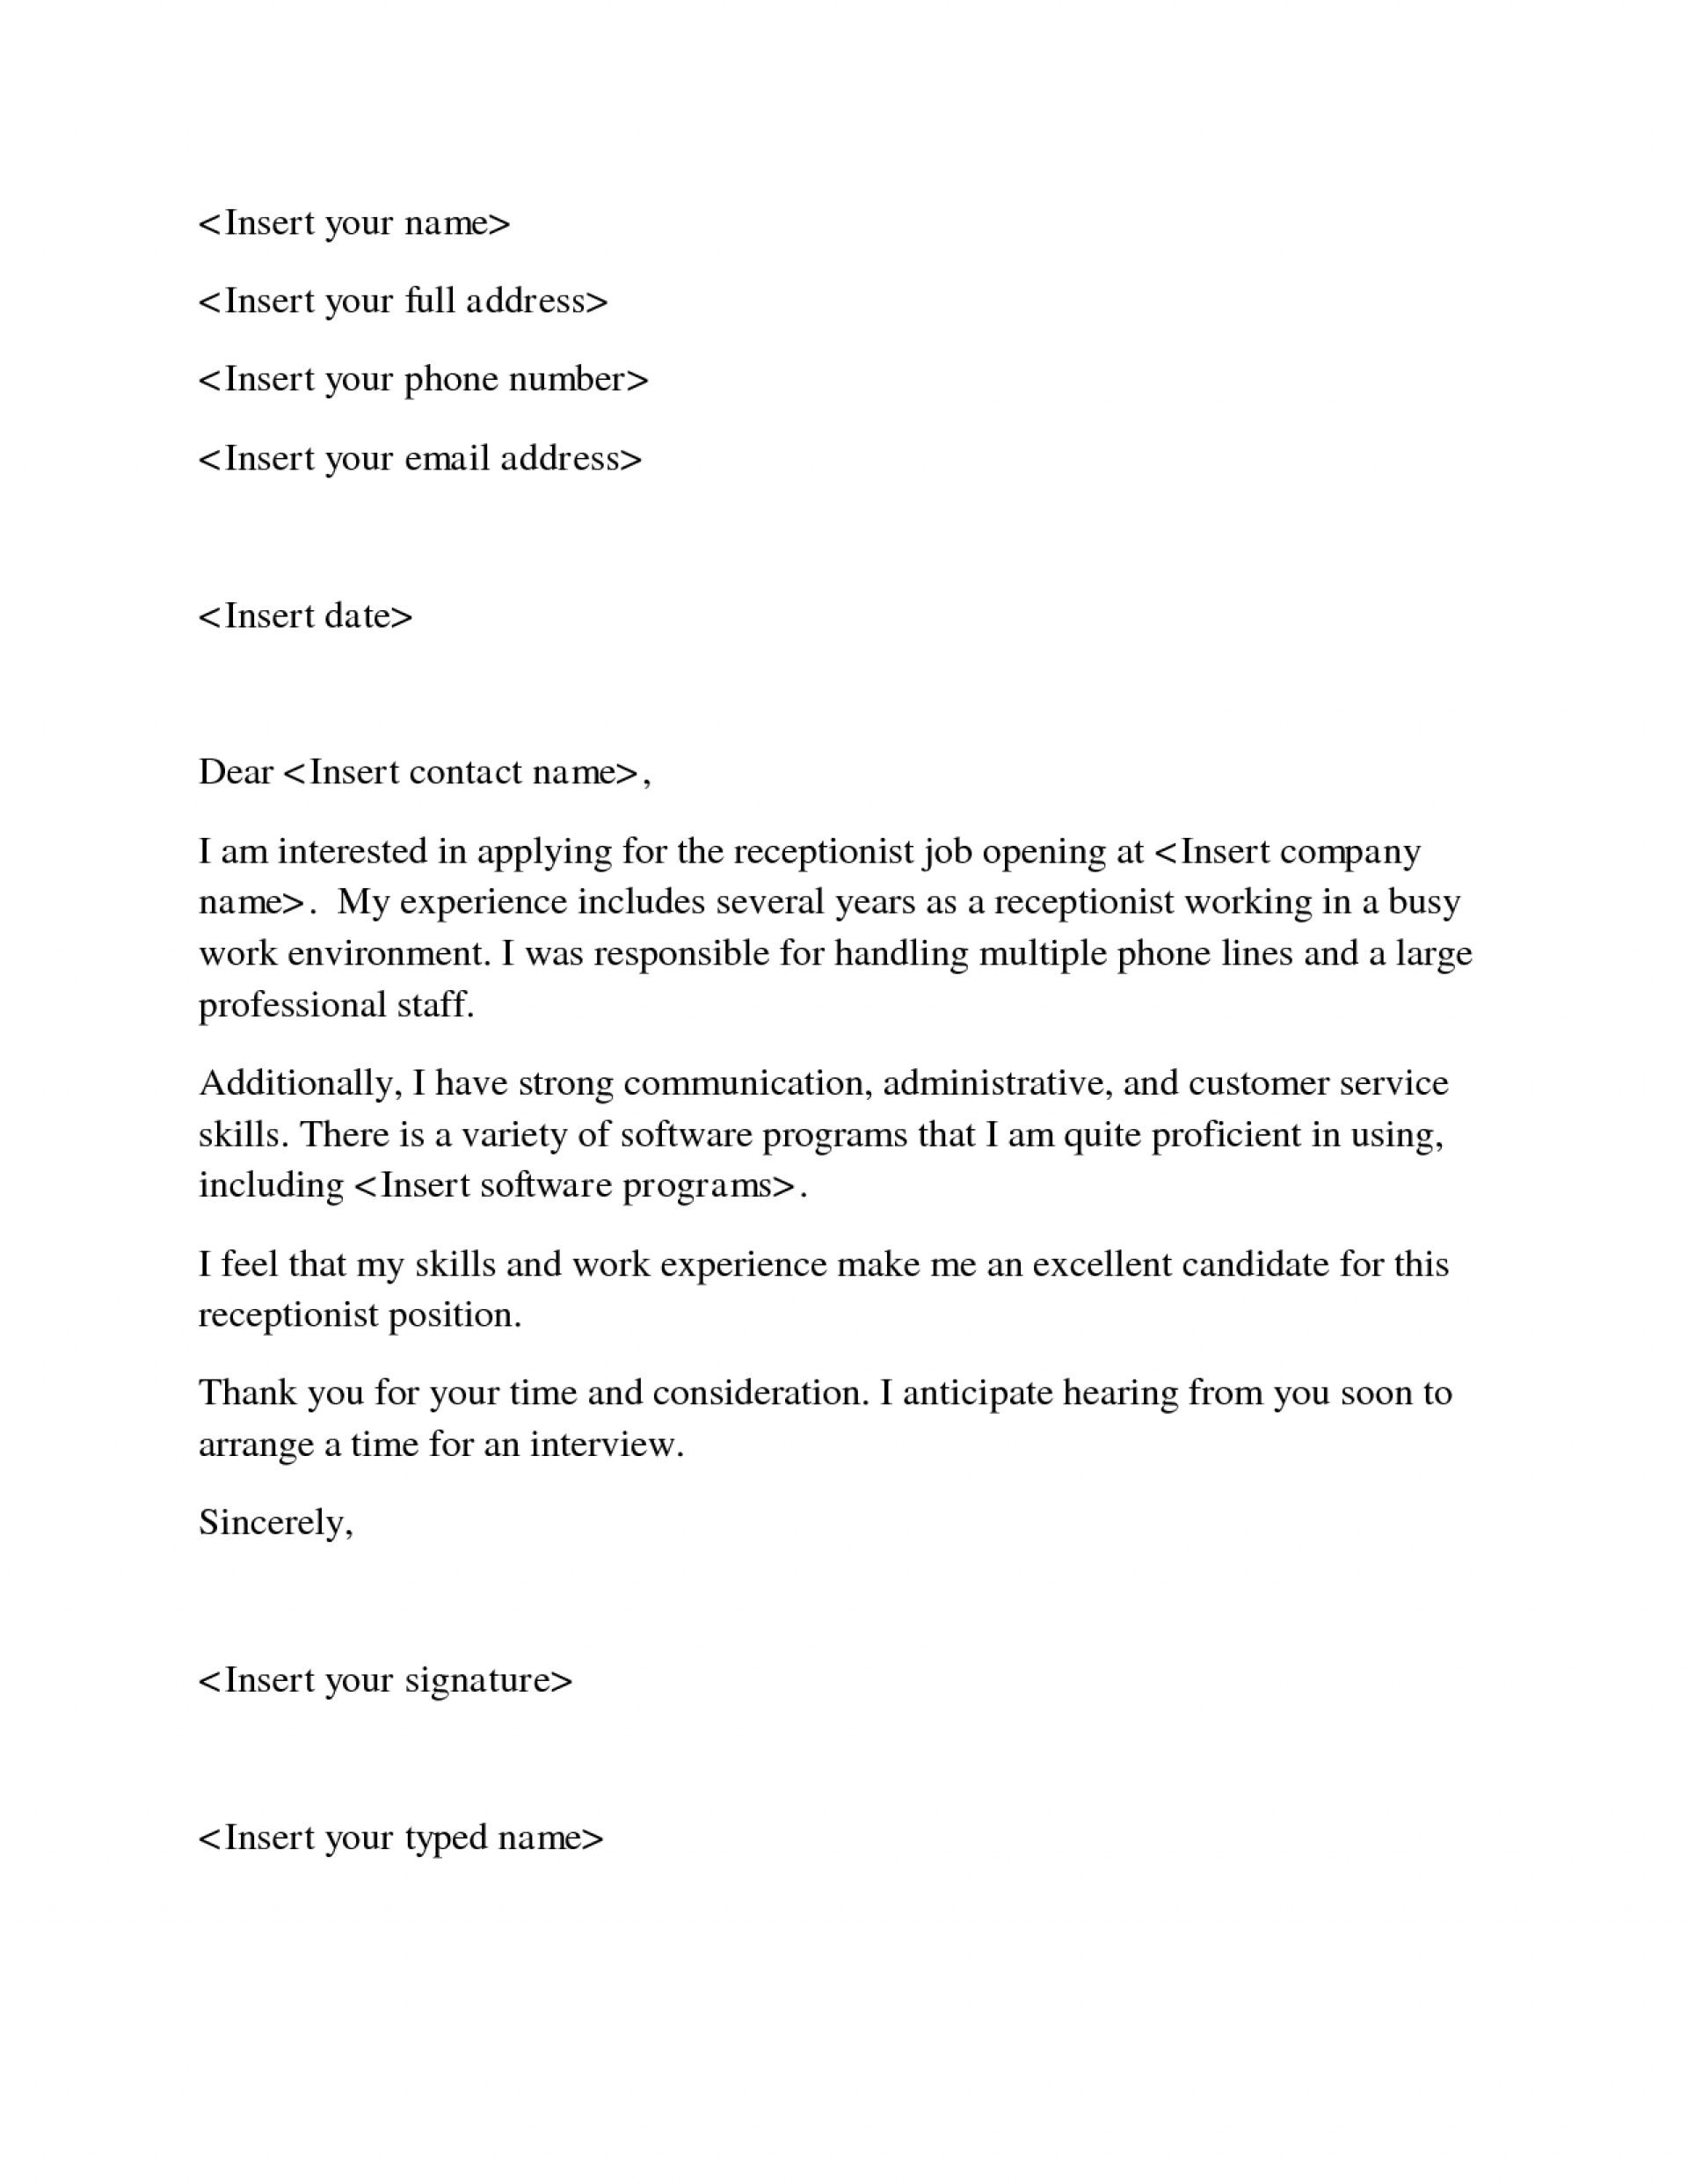 003 Essay Example Cover Letter Singular For Competition Scientific Paper Submission College 1920